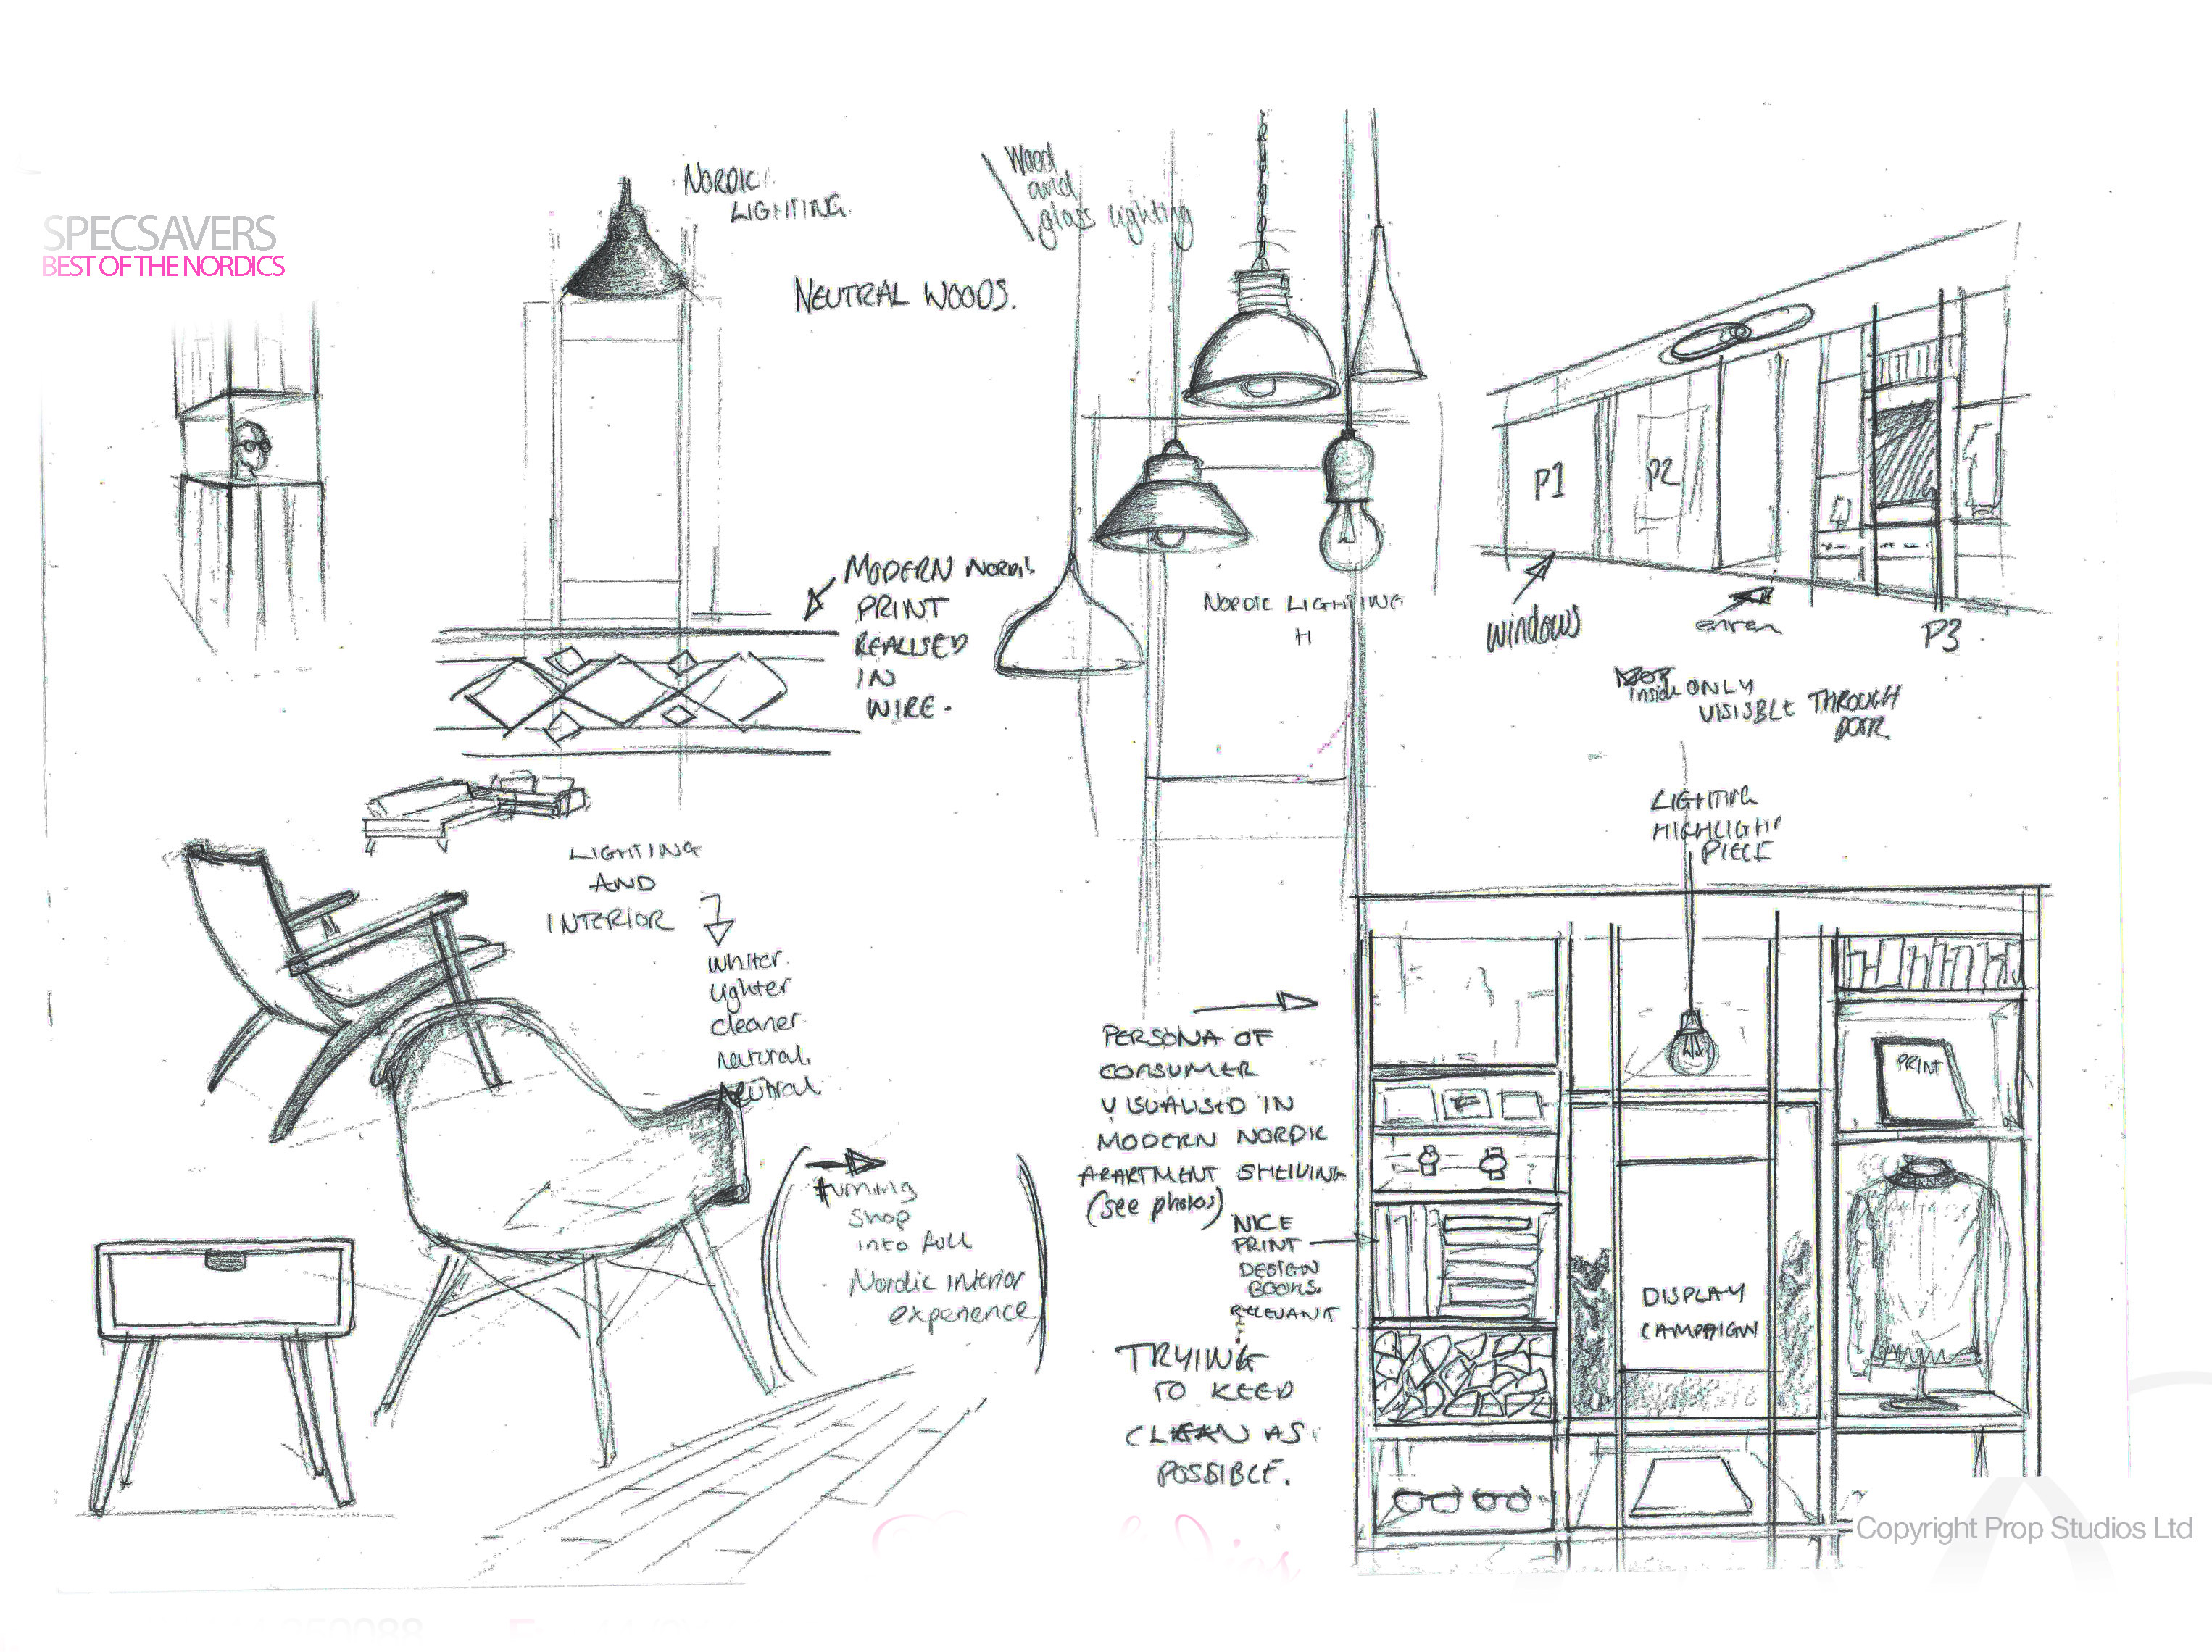 Original Prop Studios design sketch showing initial ideas for the Specsavers window display